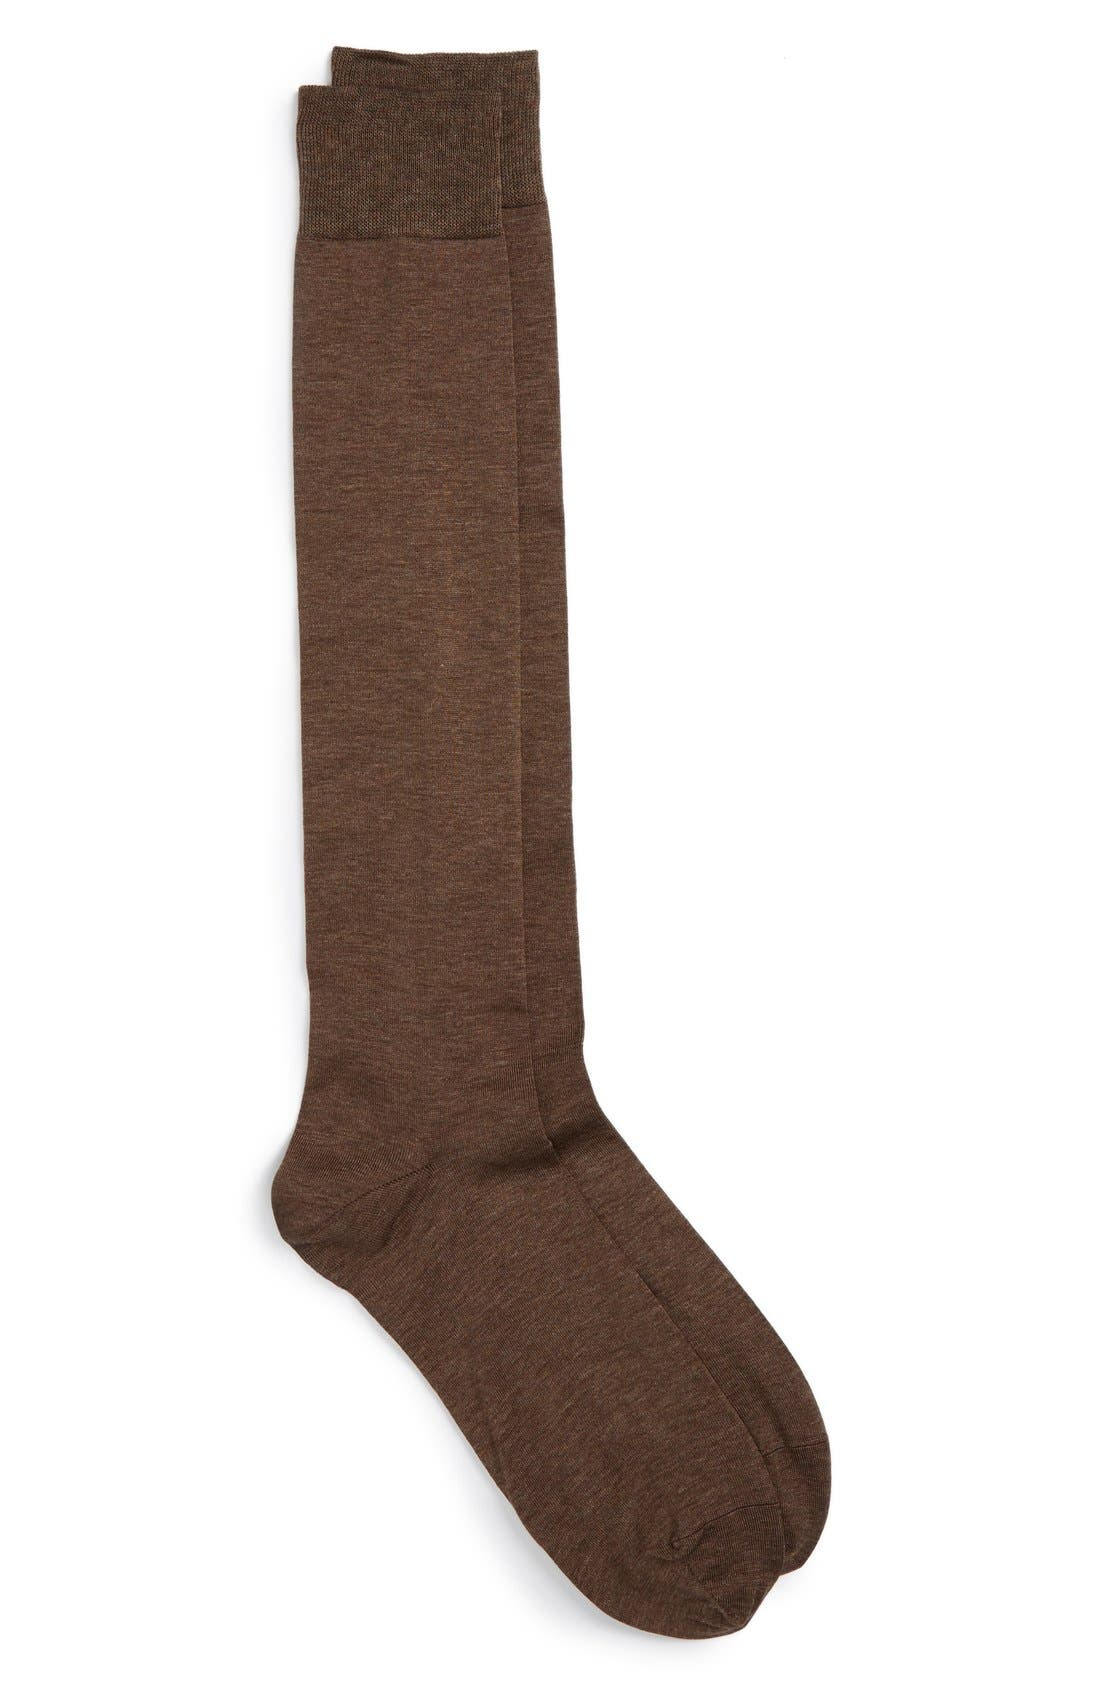 Alternate Image 1 Selected - John W. Nordstrom® Over the Calf Egyptian Cotton Blend Socks (Men) (3 for $48)